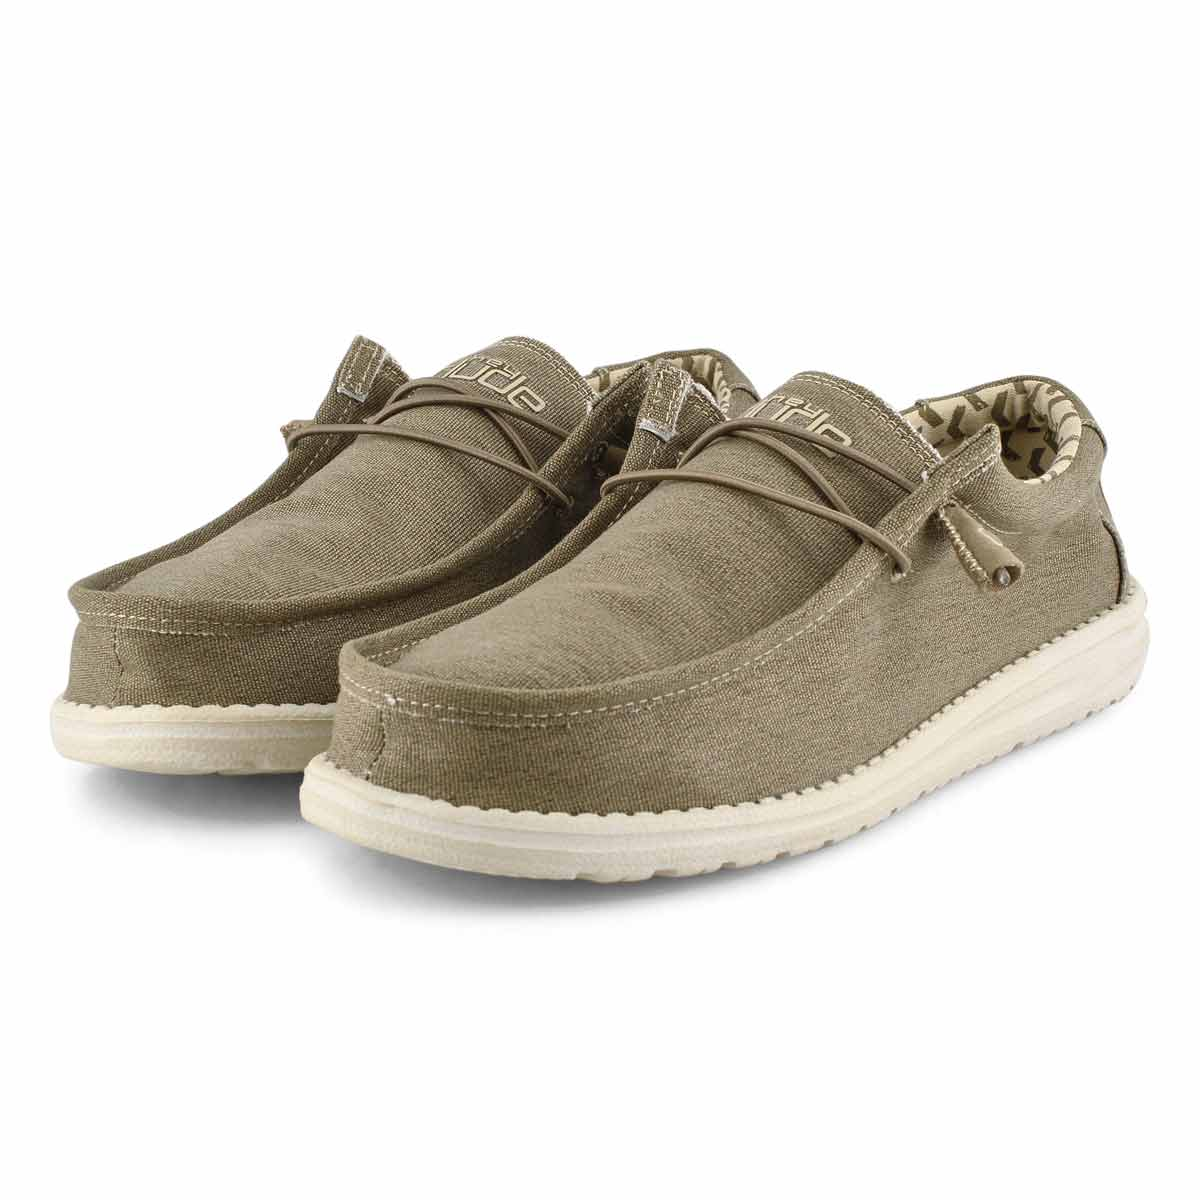 Mns Wally Stretch tobacco casual shoe